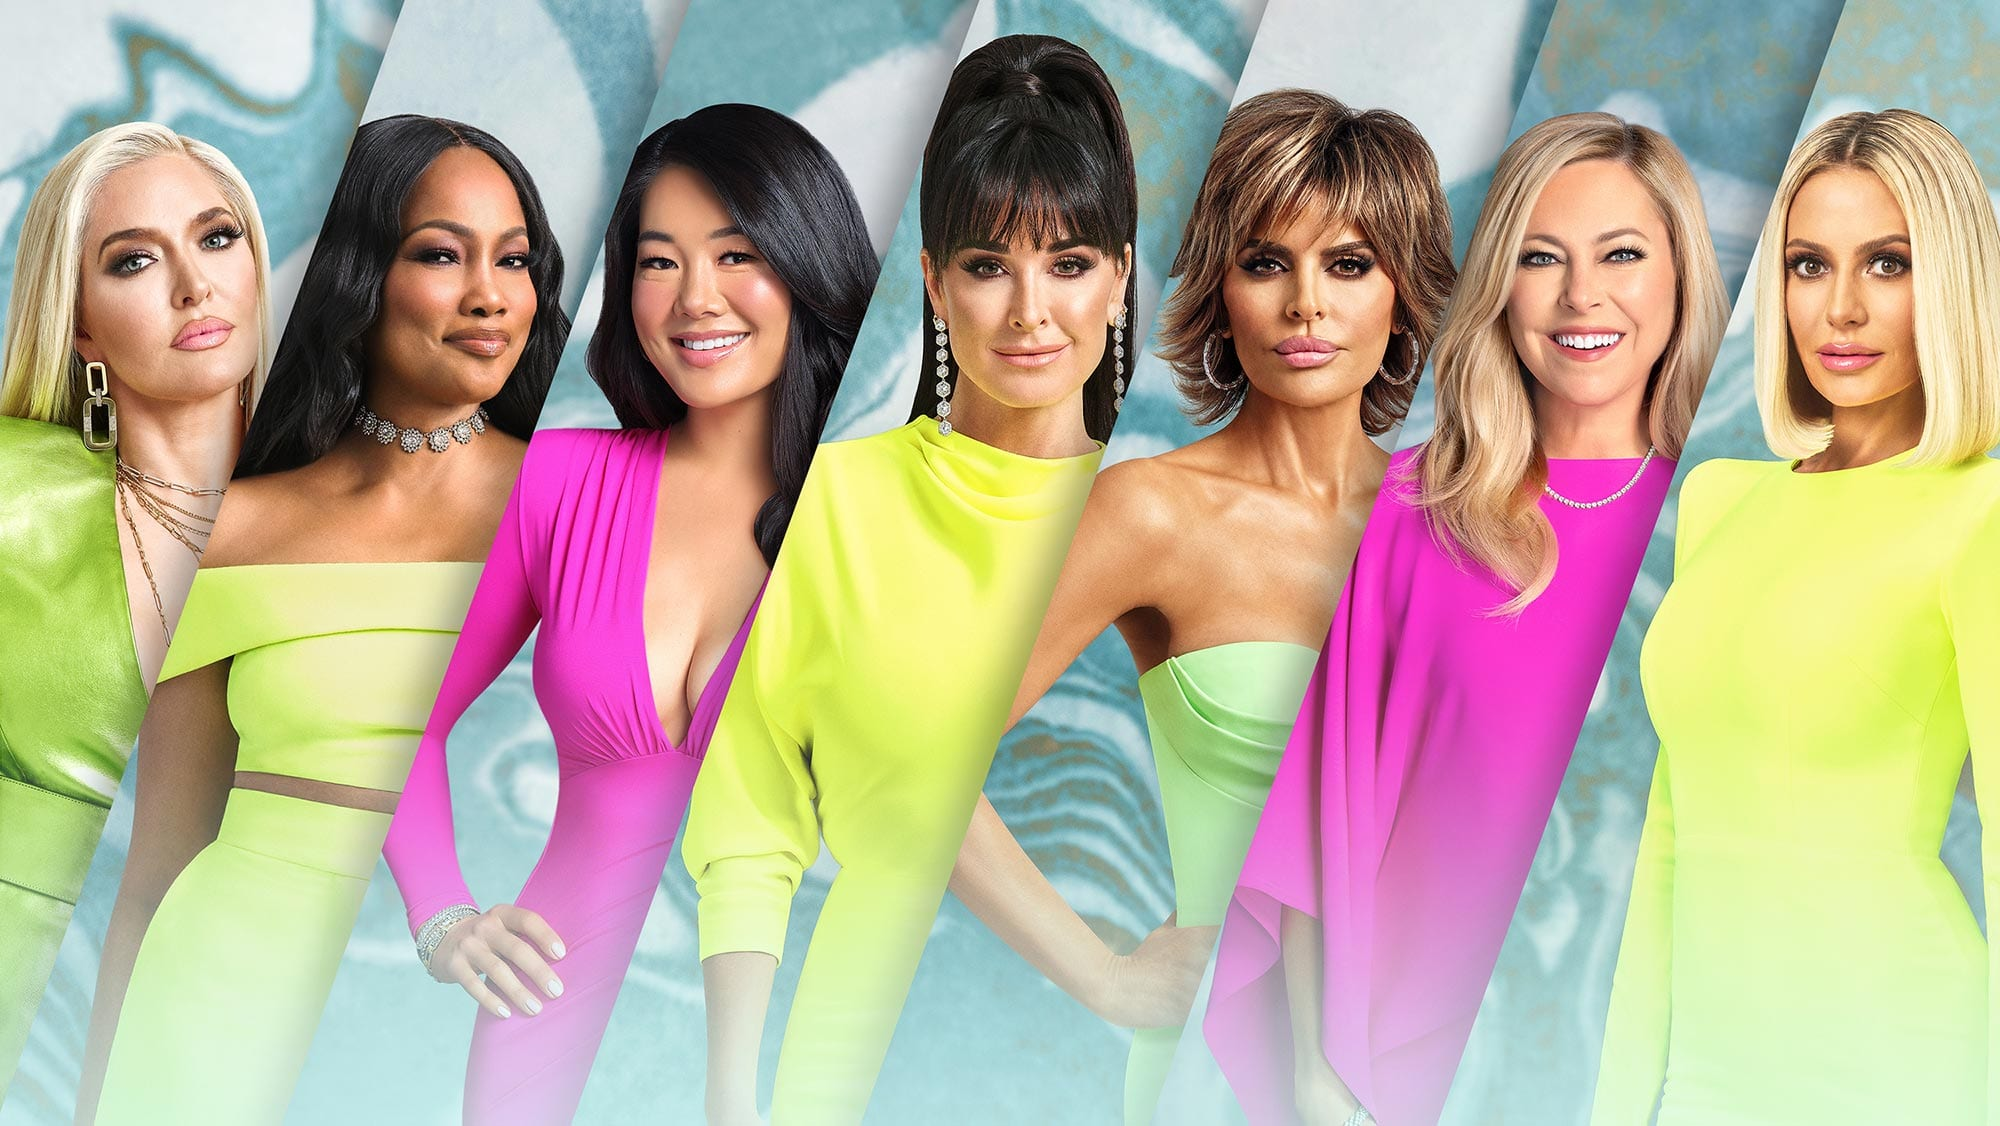 The Real Housewives of Beverly Hills Season 11 Episode 2 Release Date and Spoilers